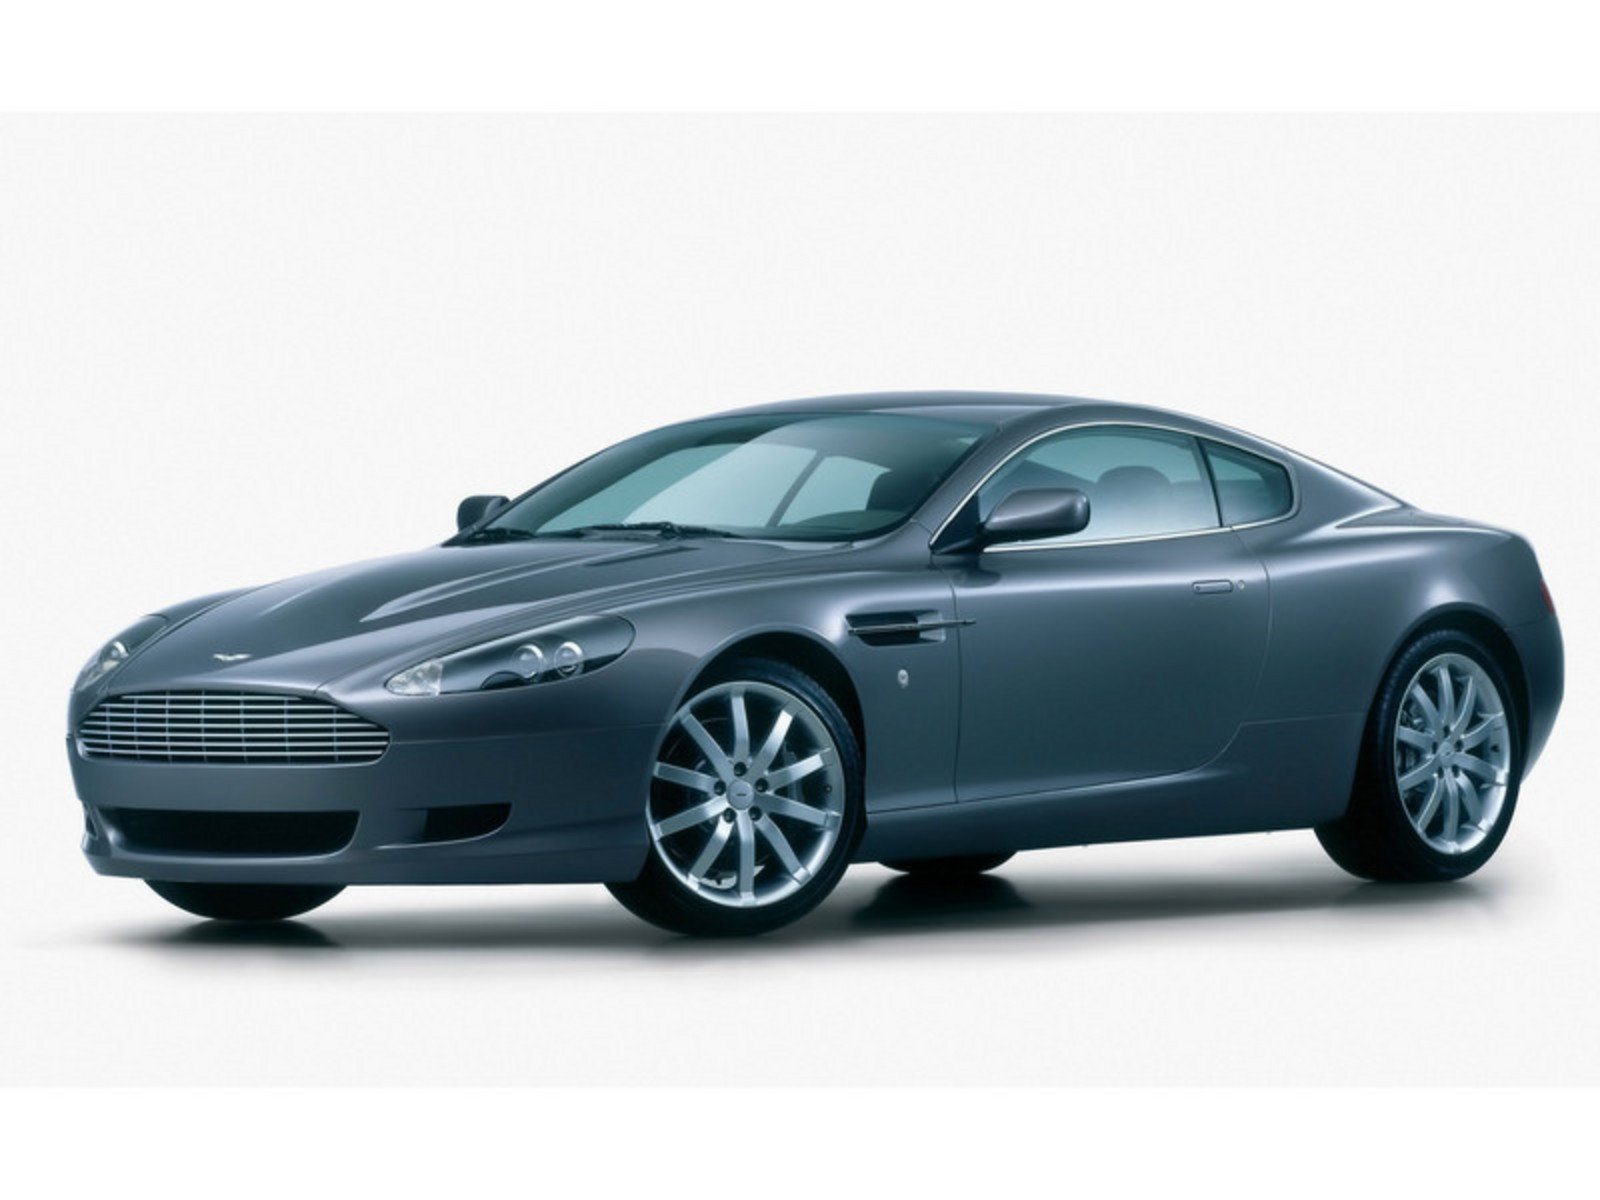 2006 aston-martin db9 review - top speed